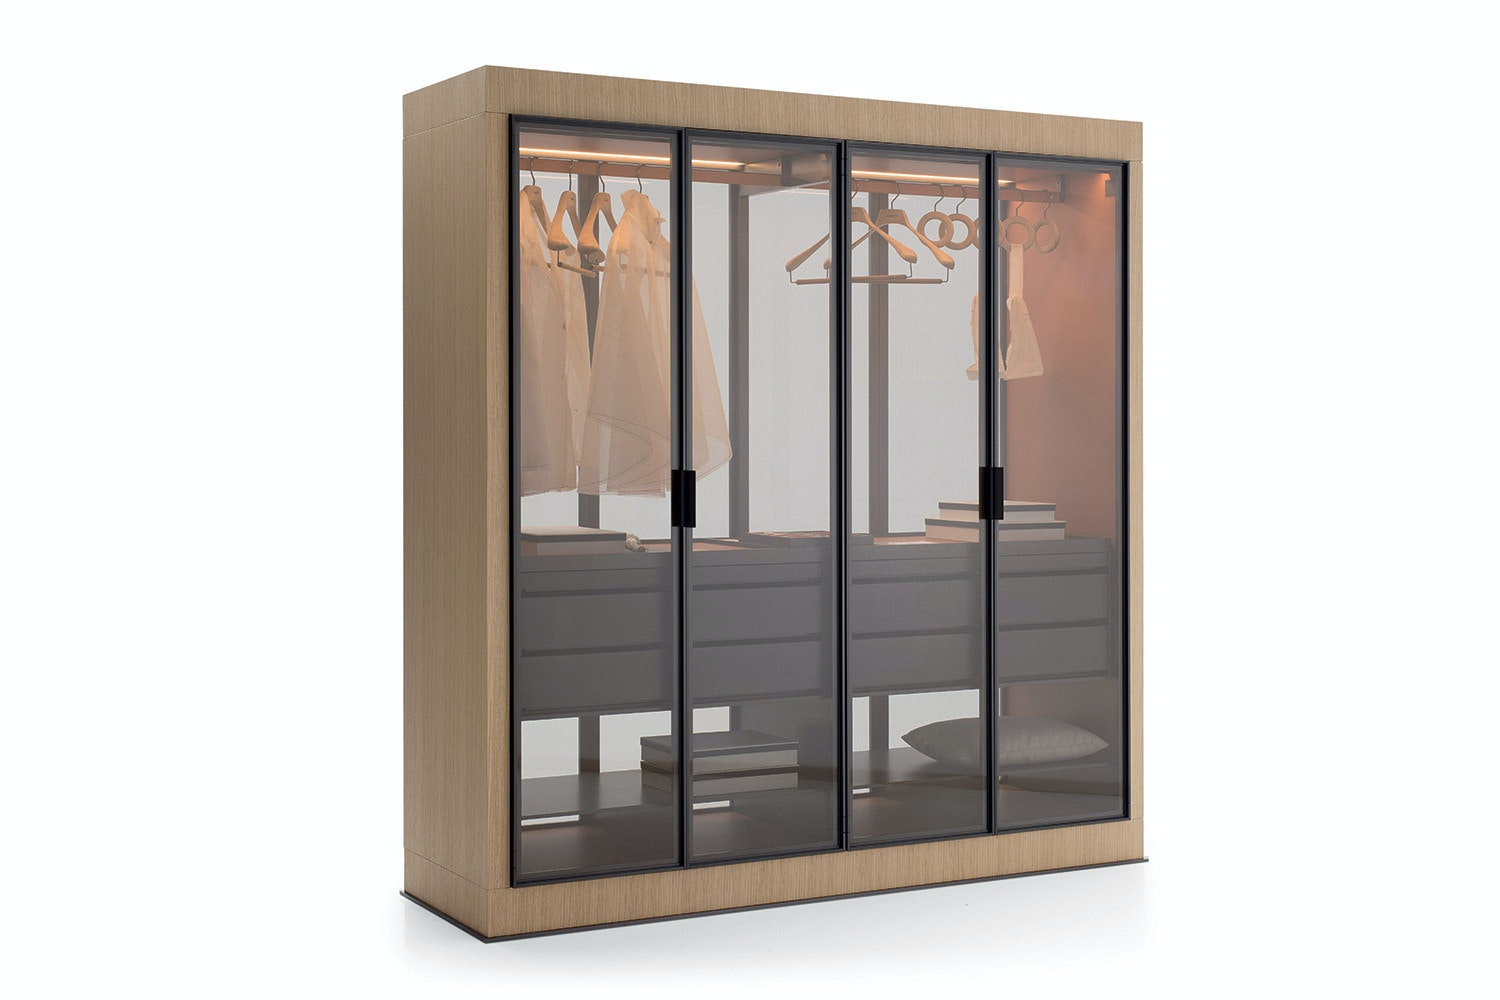 Eracle Wardrobe by Antonio Citterio for Maxalto